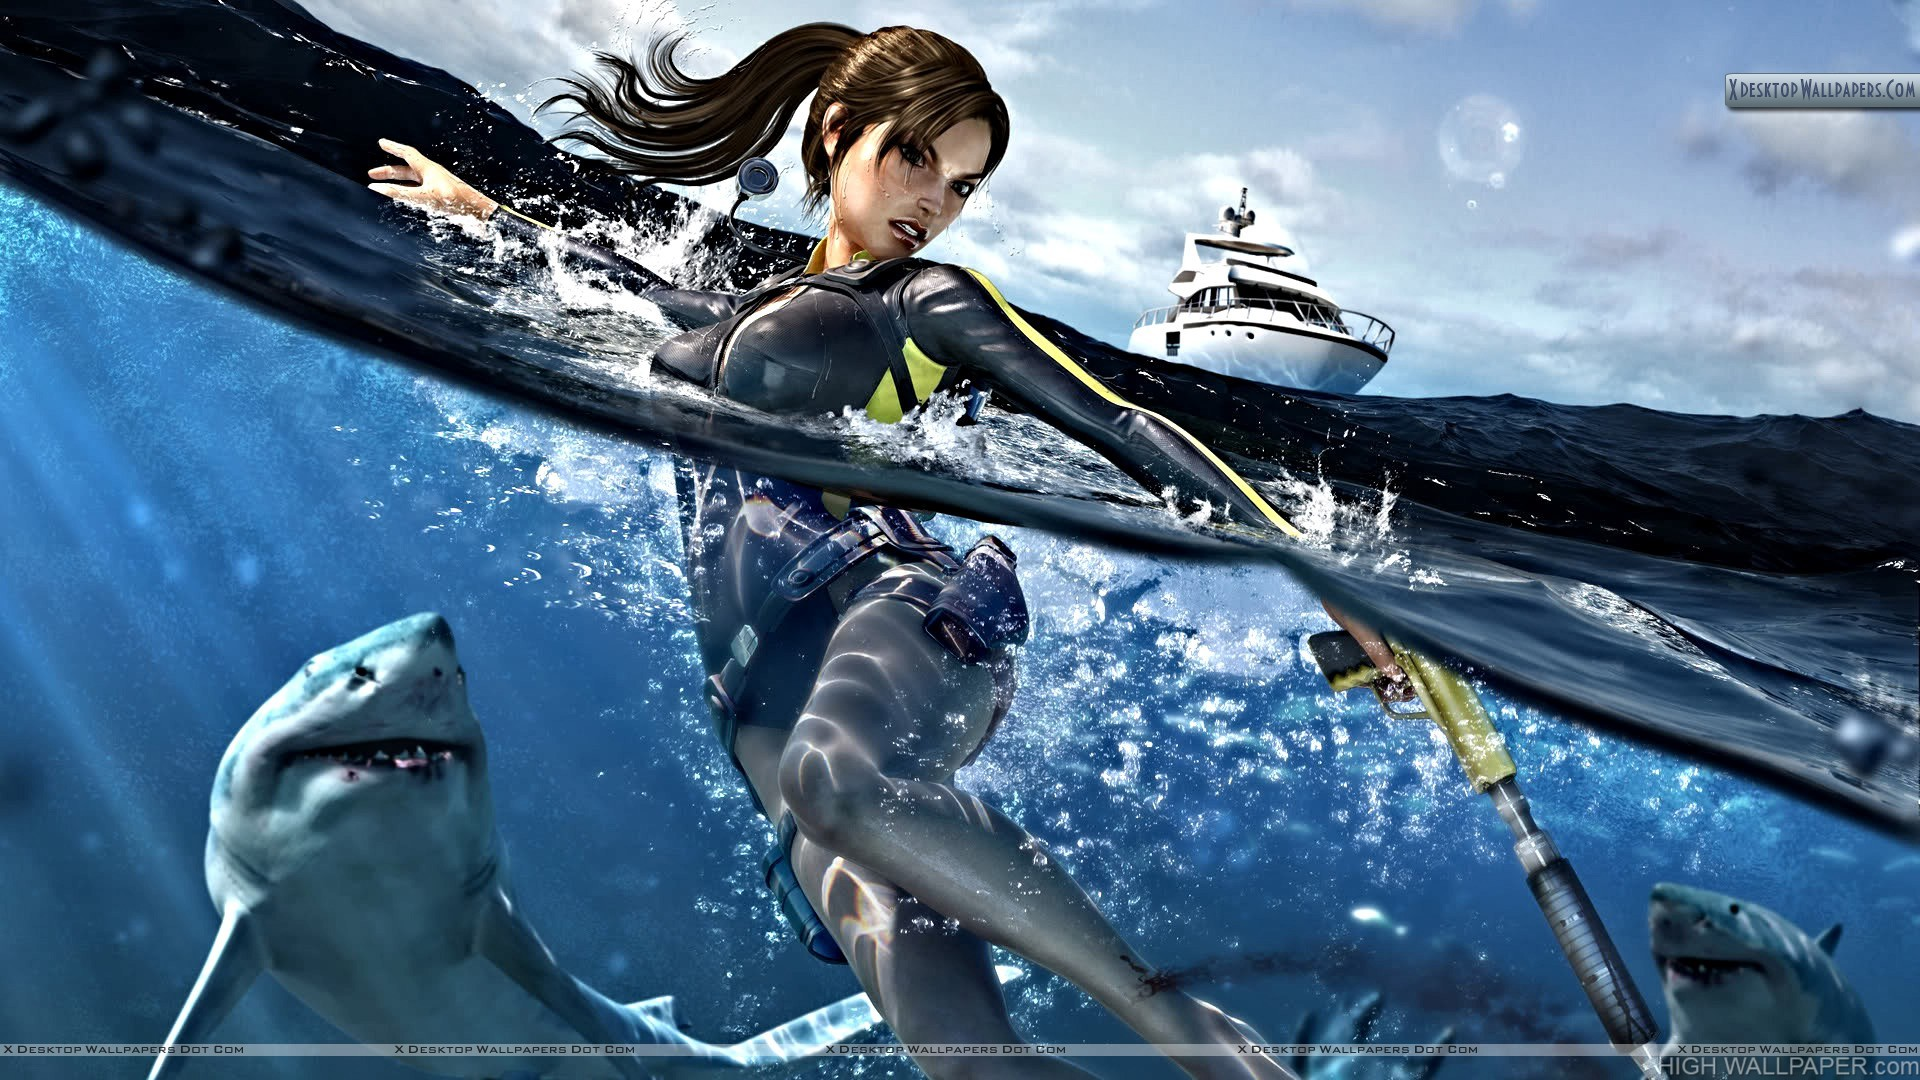 Tomb Raider Fighting with Sharks